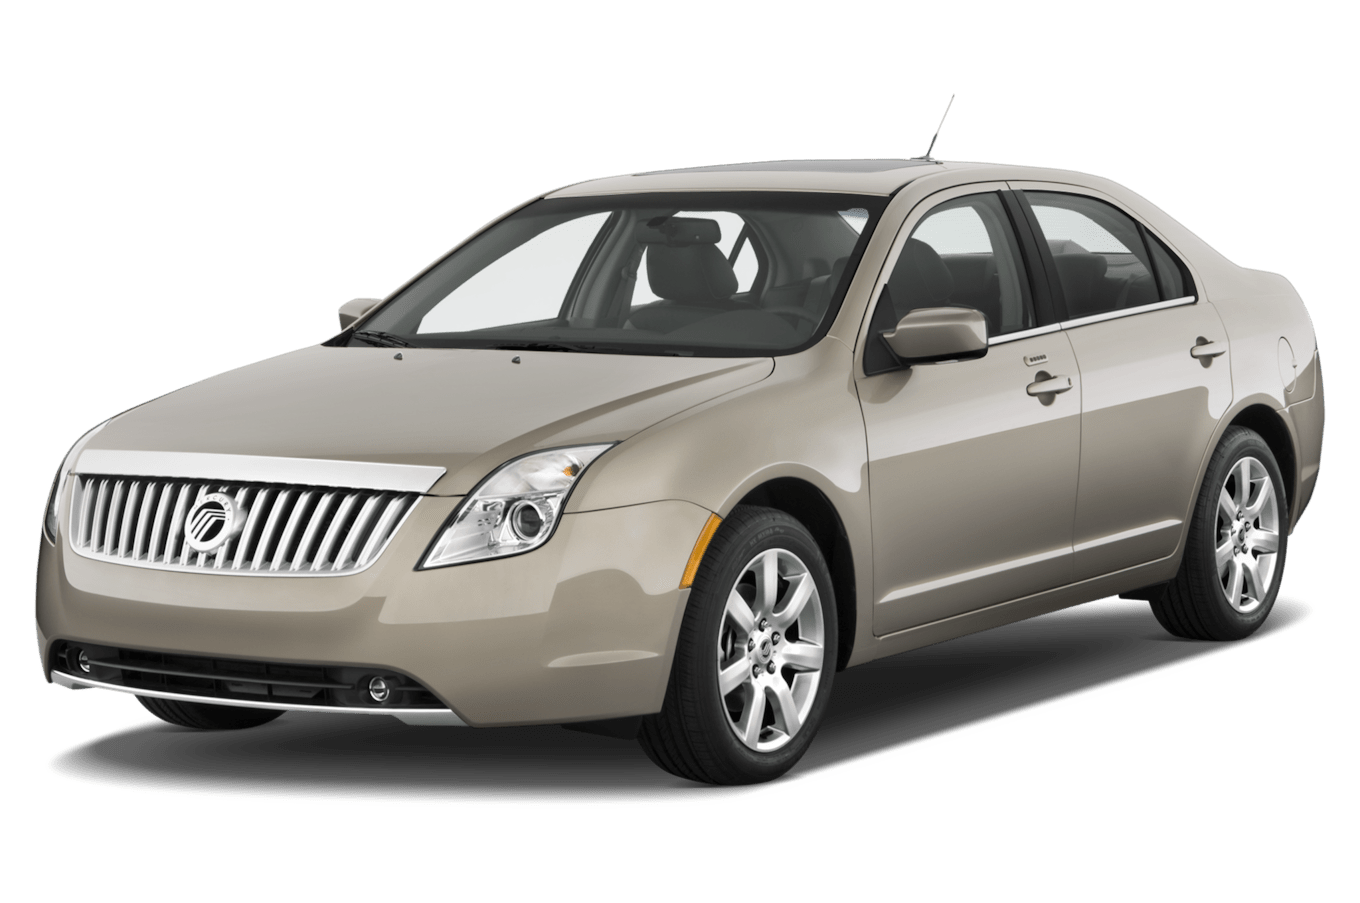 Hg Auto Mercury Montego Reviews: Research New & Used Models